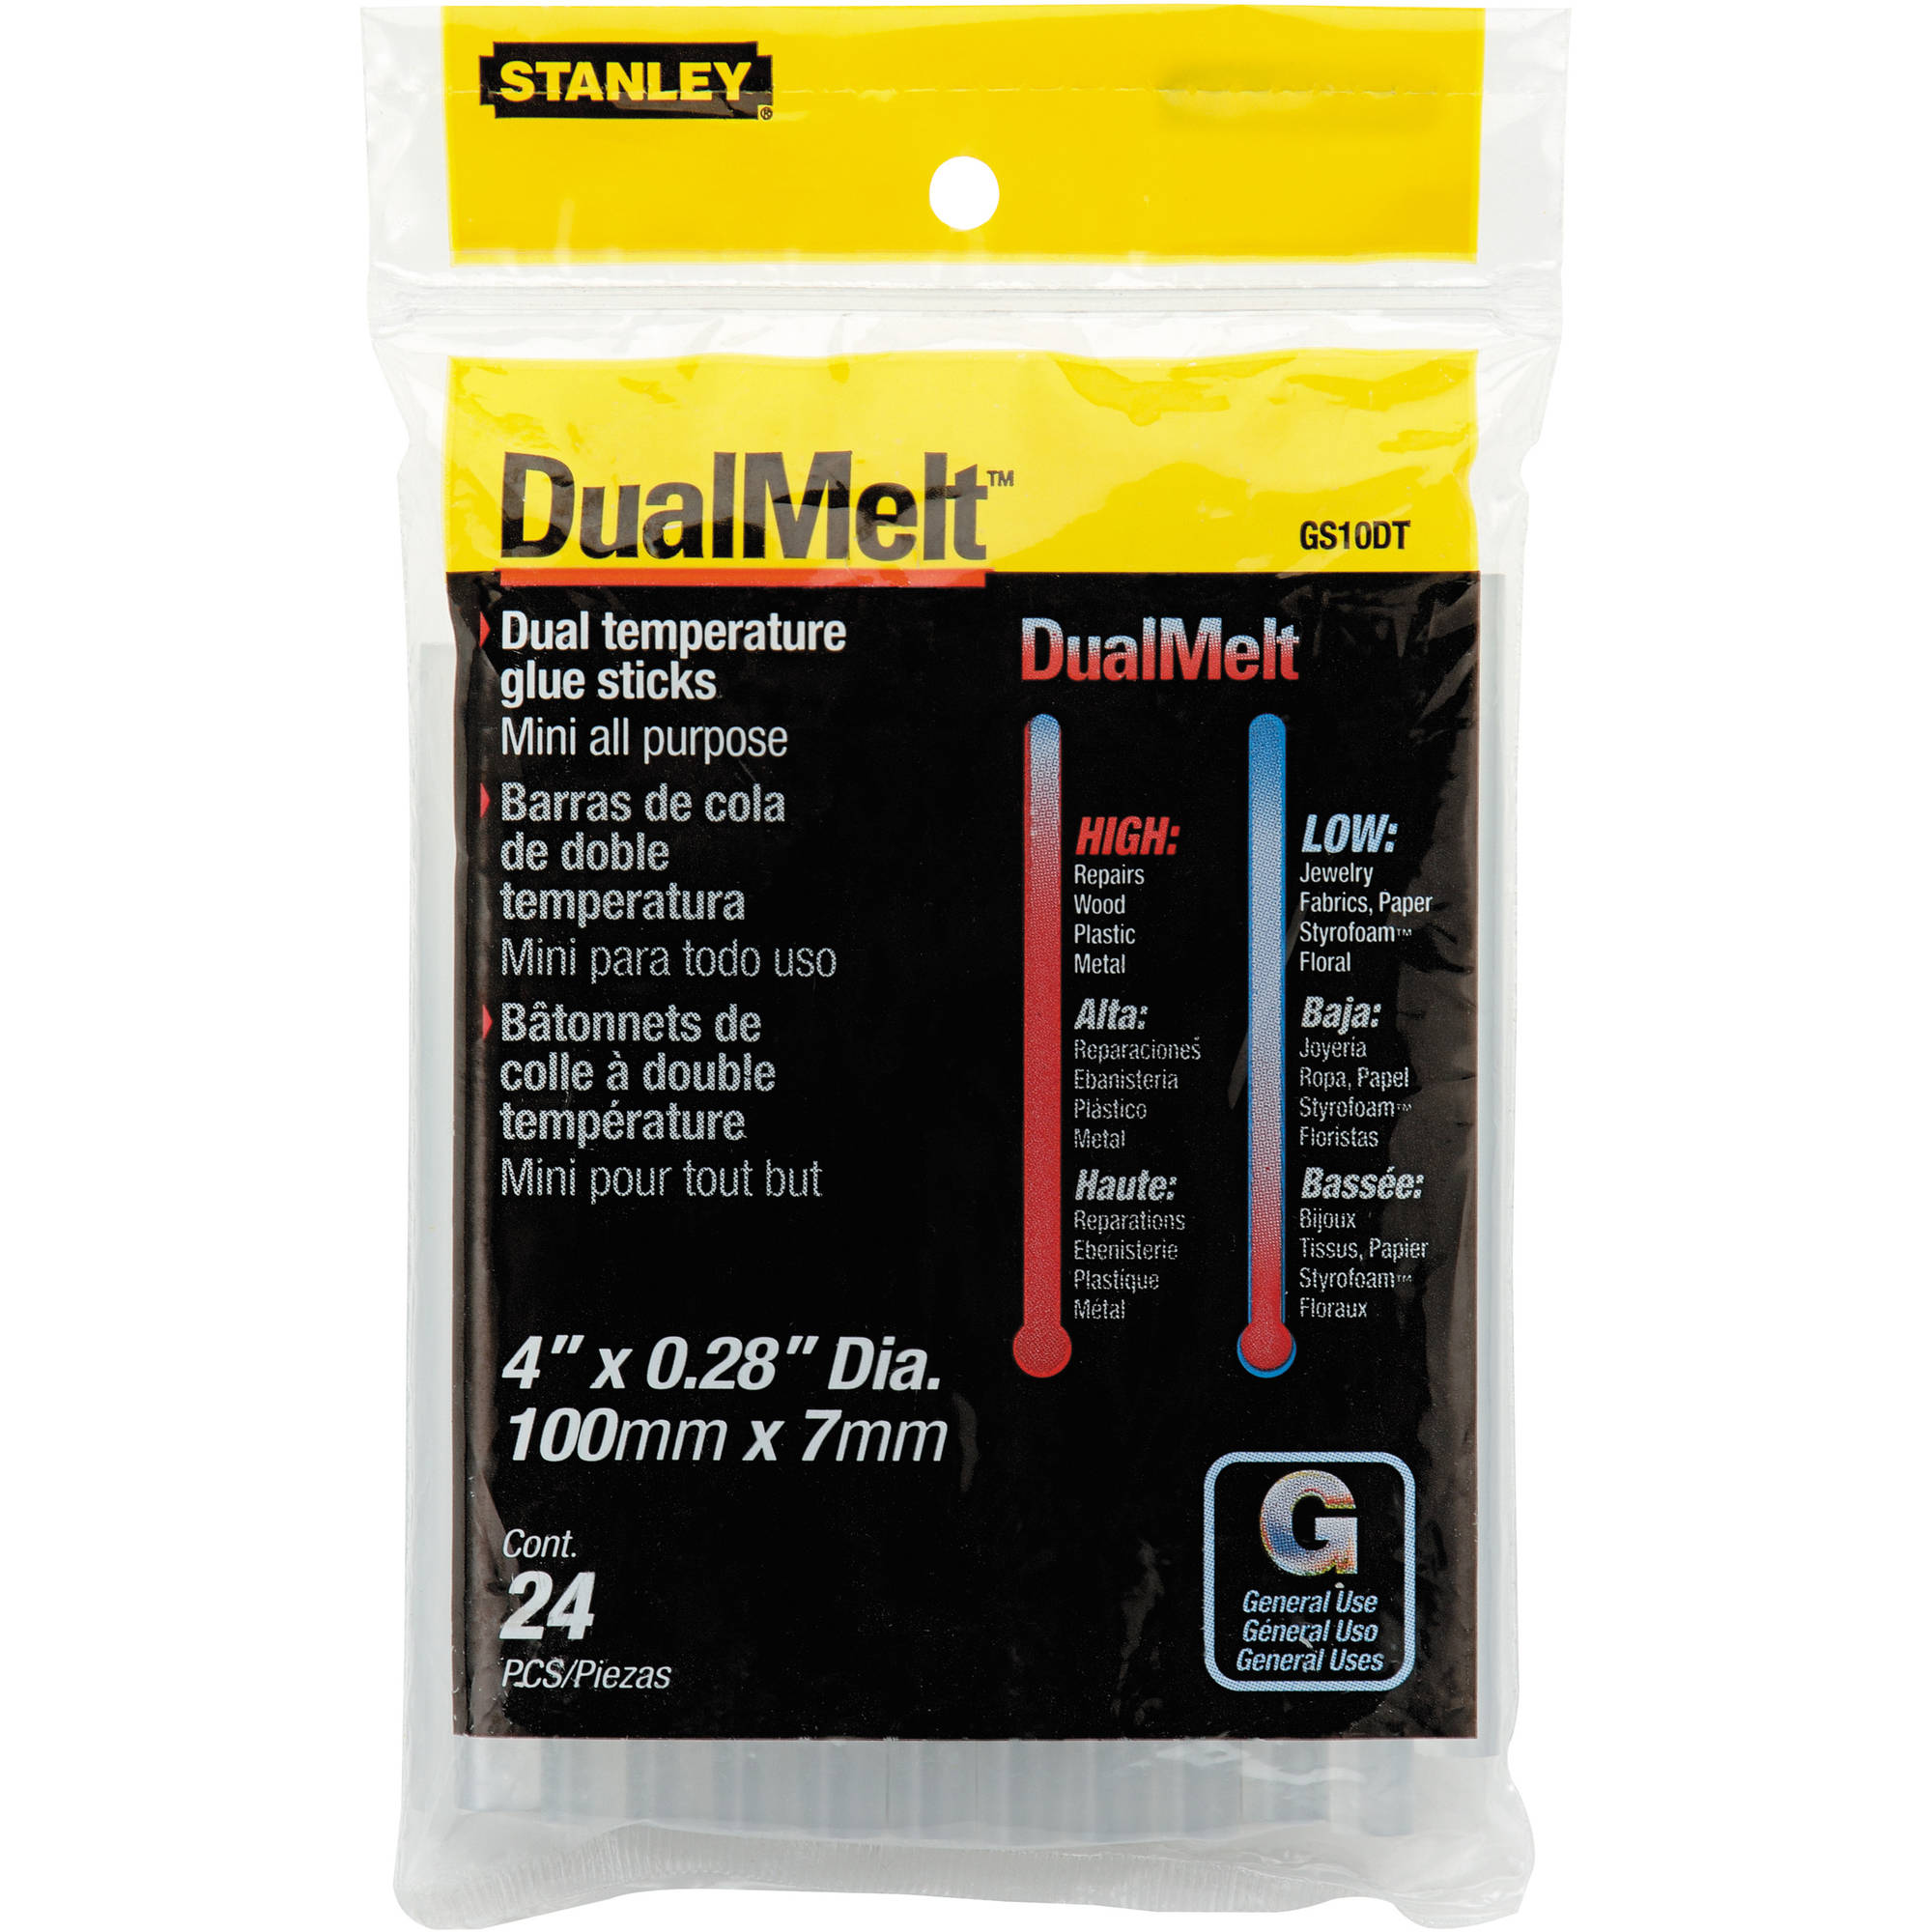 "STANLEY DUALMELT MINI GLUE STICKS 4"" - 24 PACK"